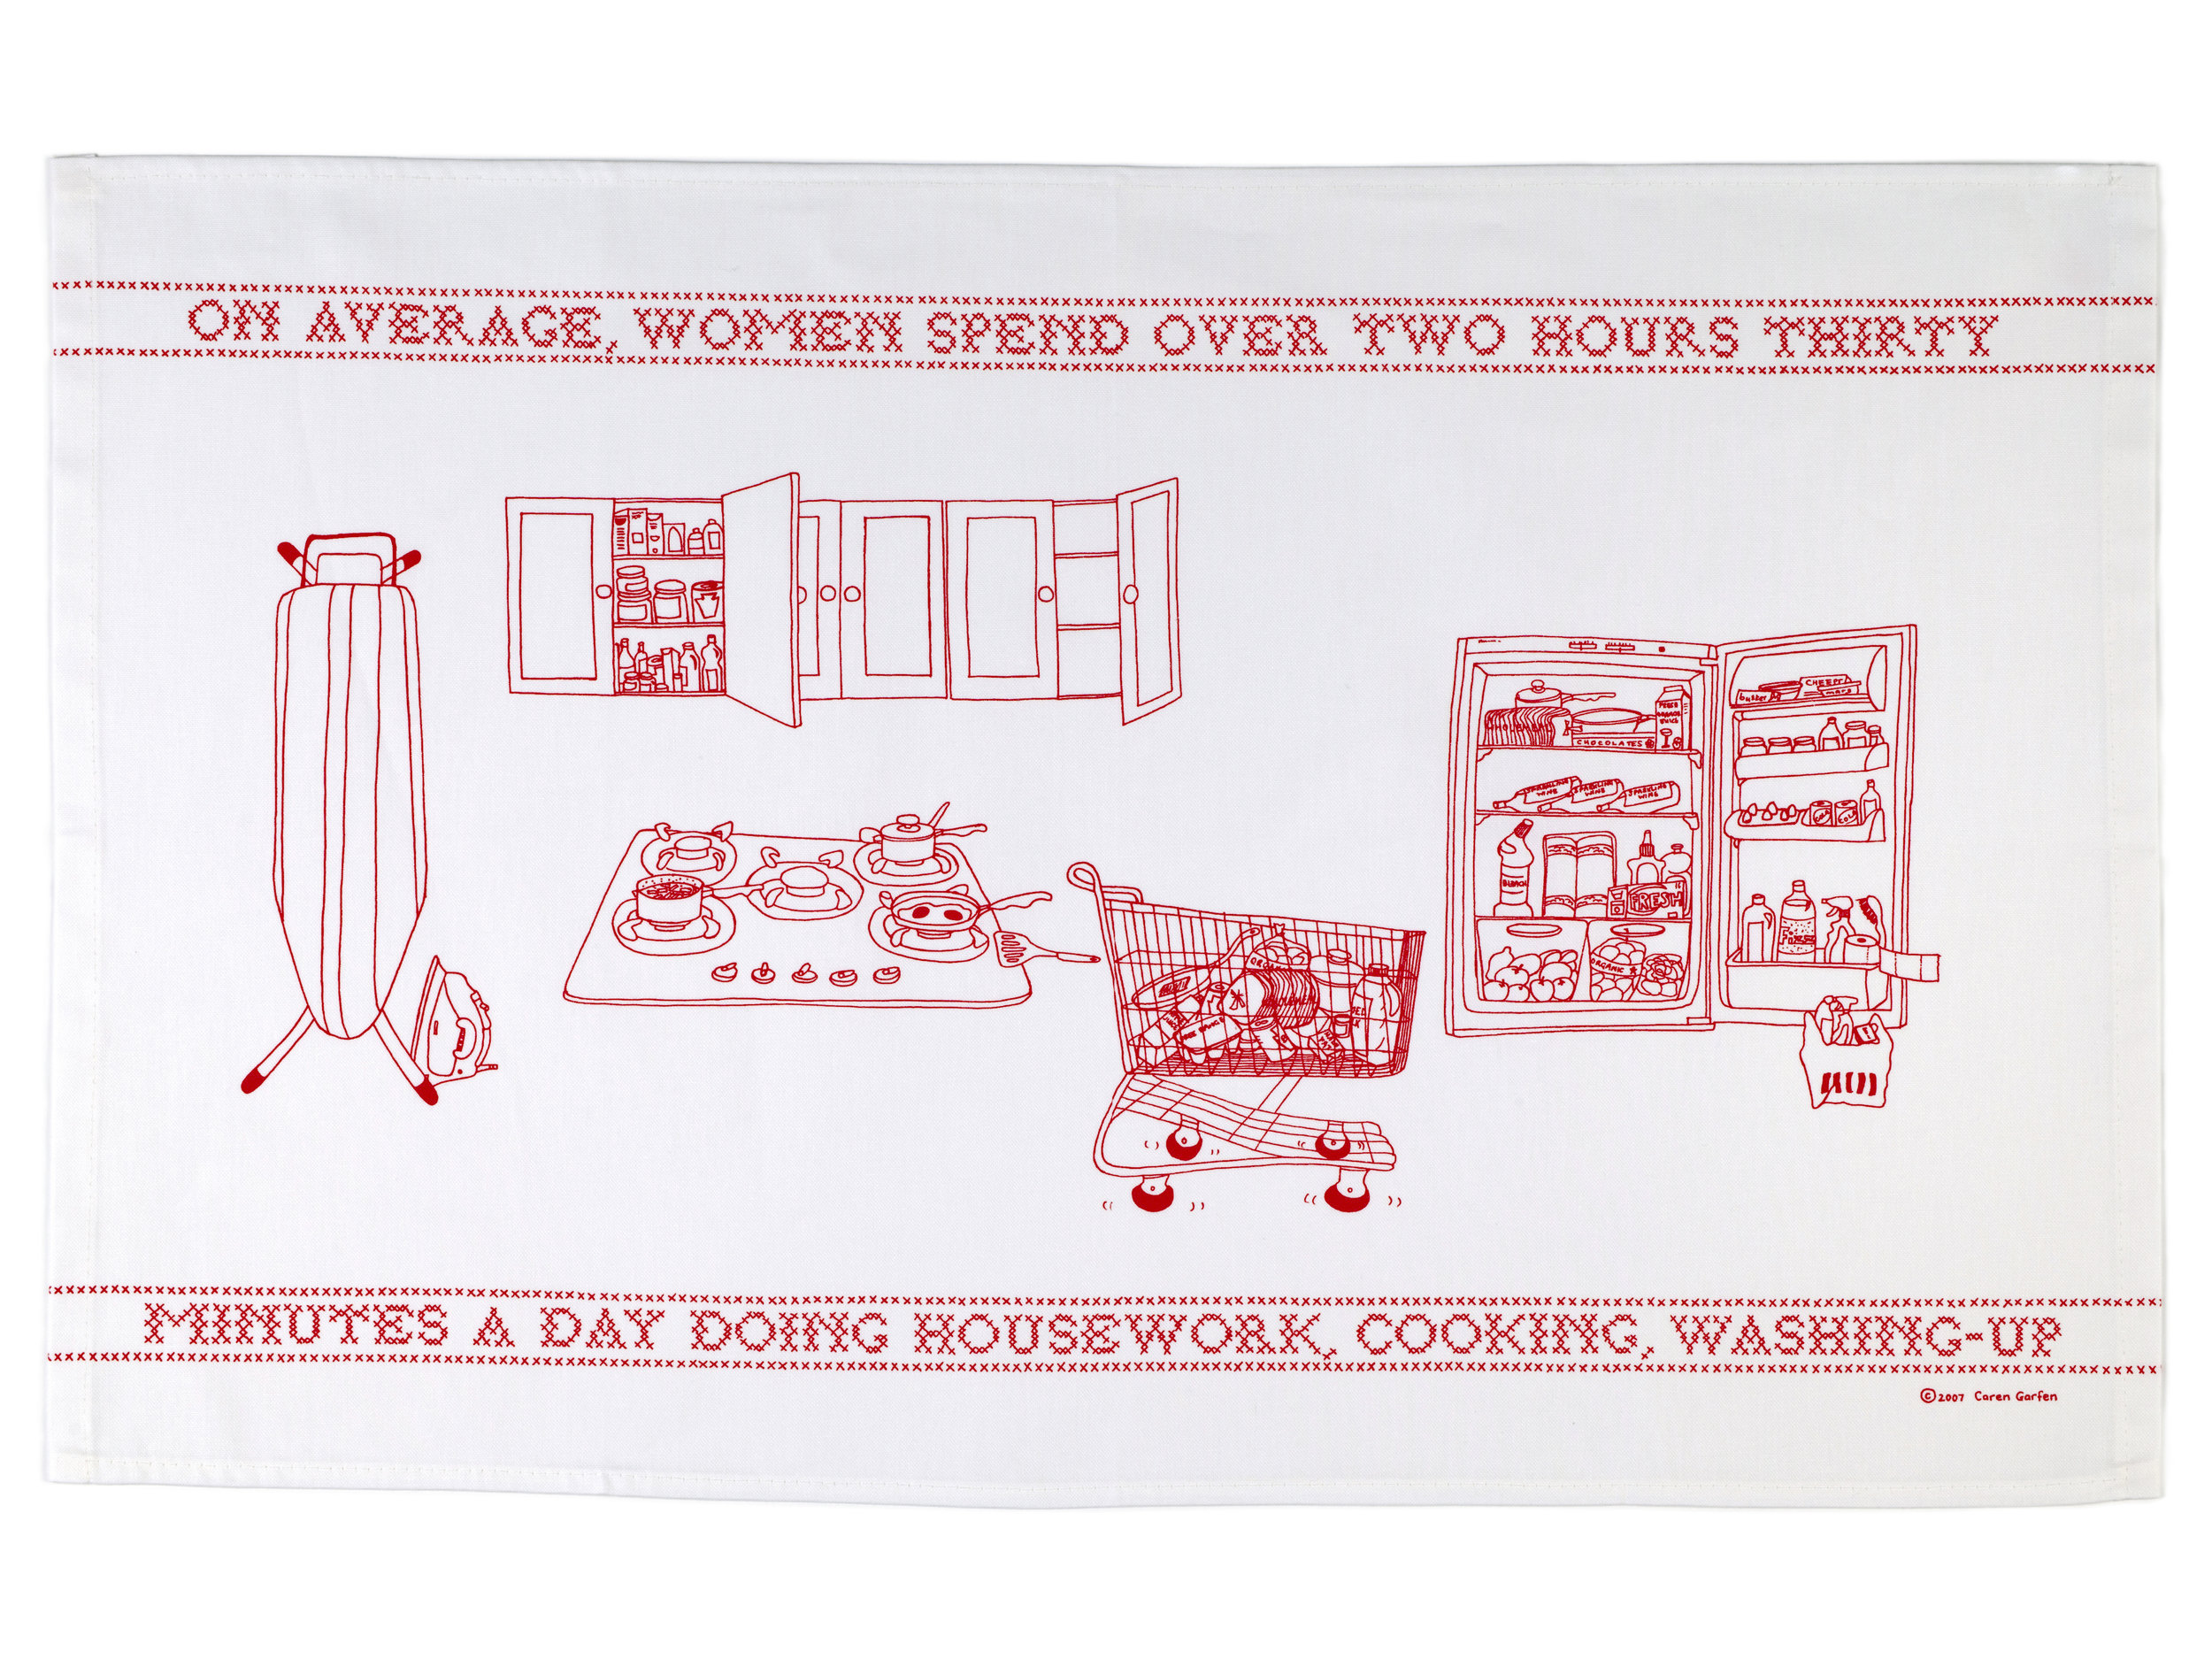 Limited edition designer tea-towels (sold out)